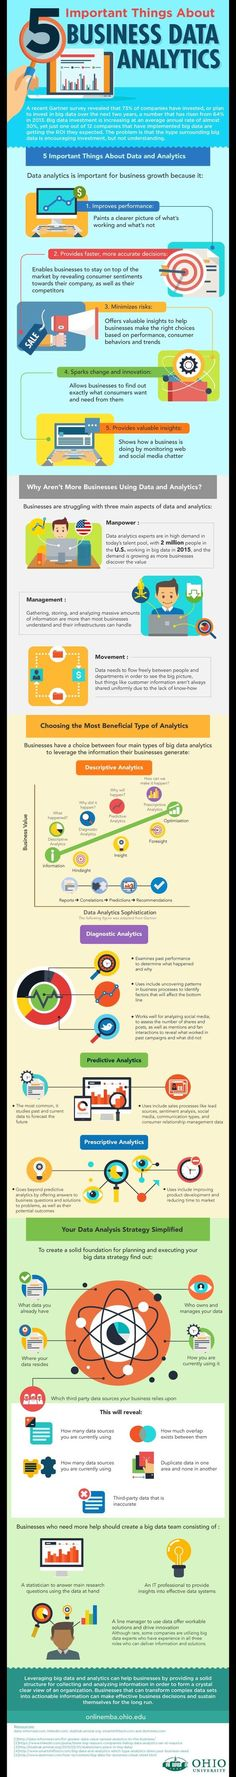 5 Important Things About Business Data Analytics #infographic #Business #BigData